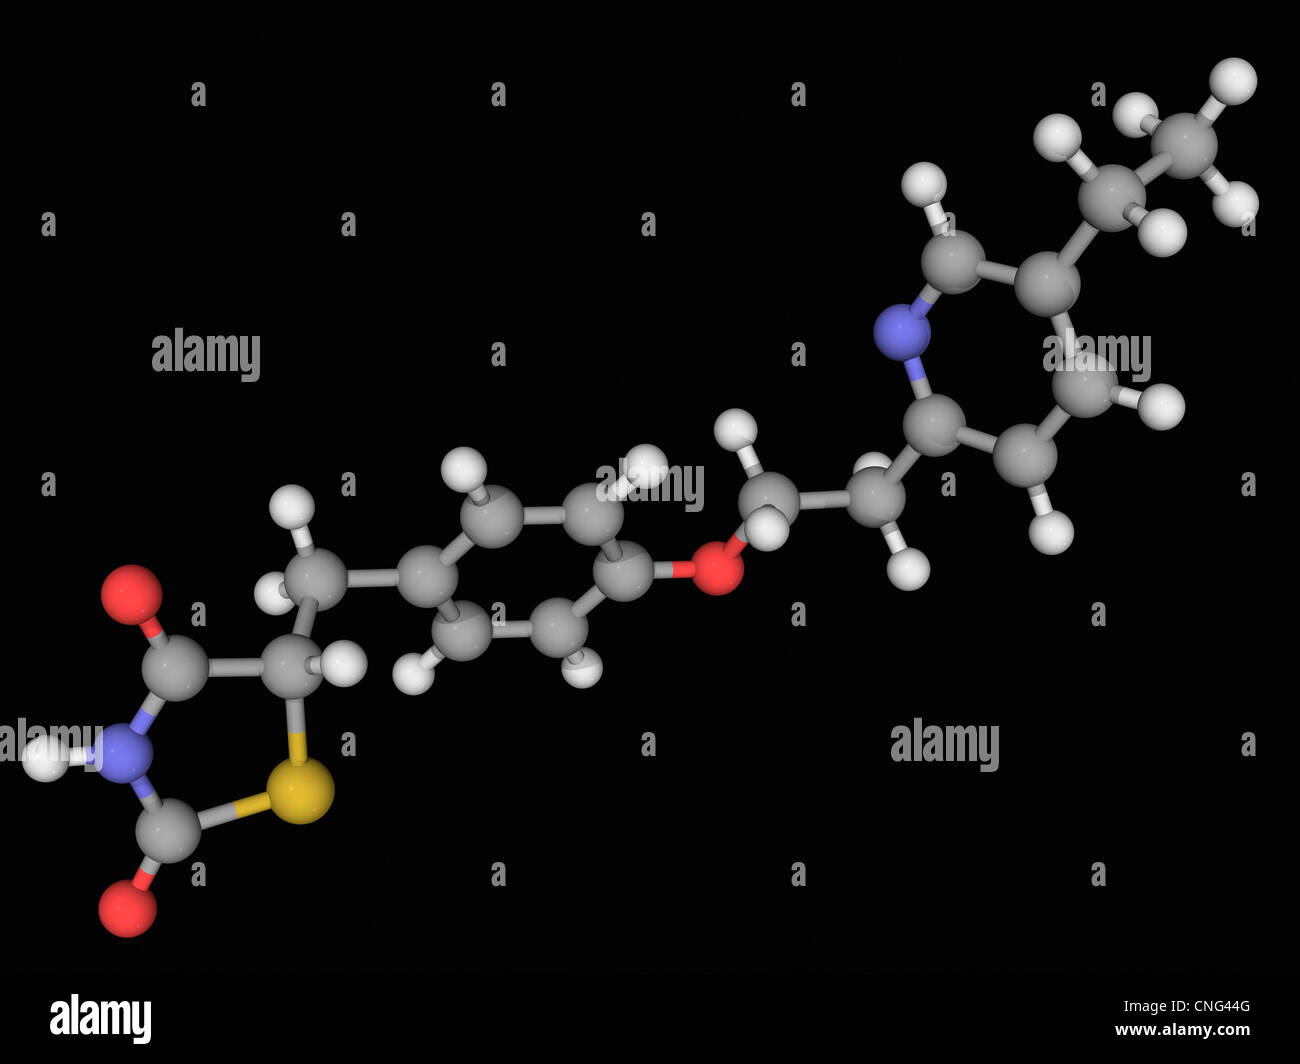 Pioglitazone molécule pharmaceutique Photo Stock